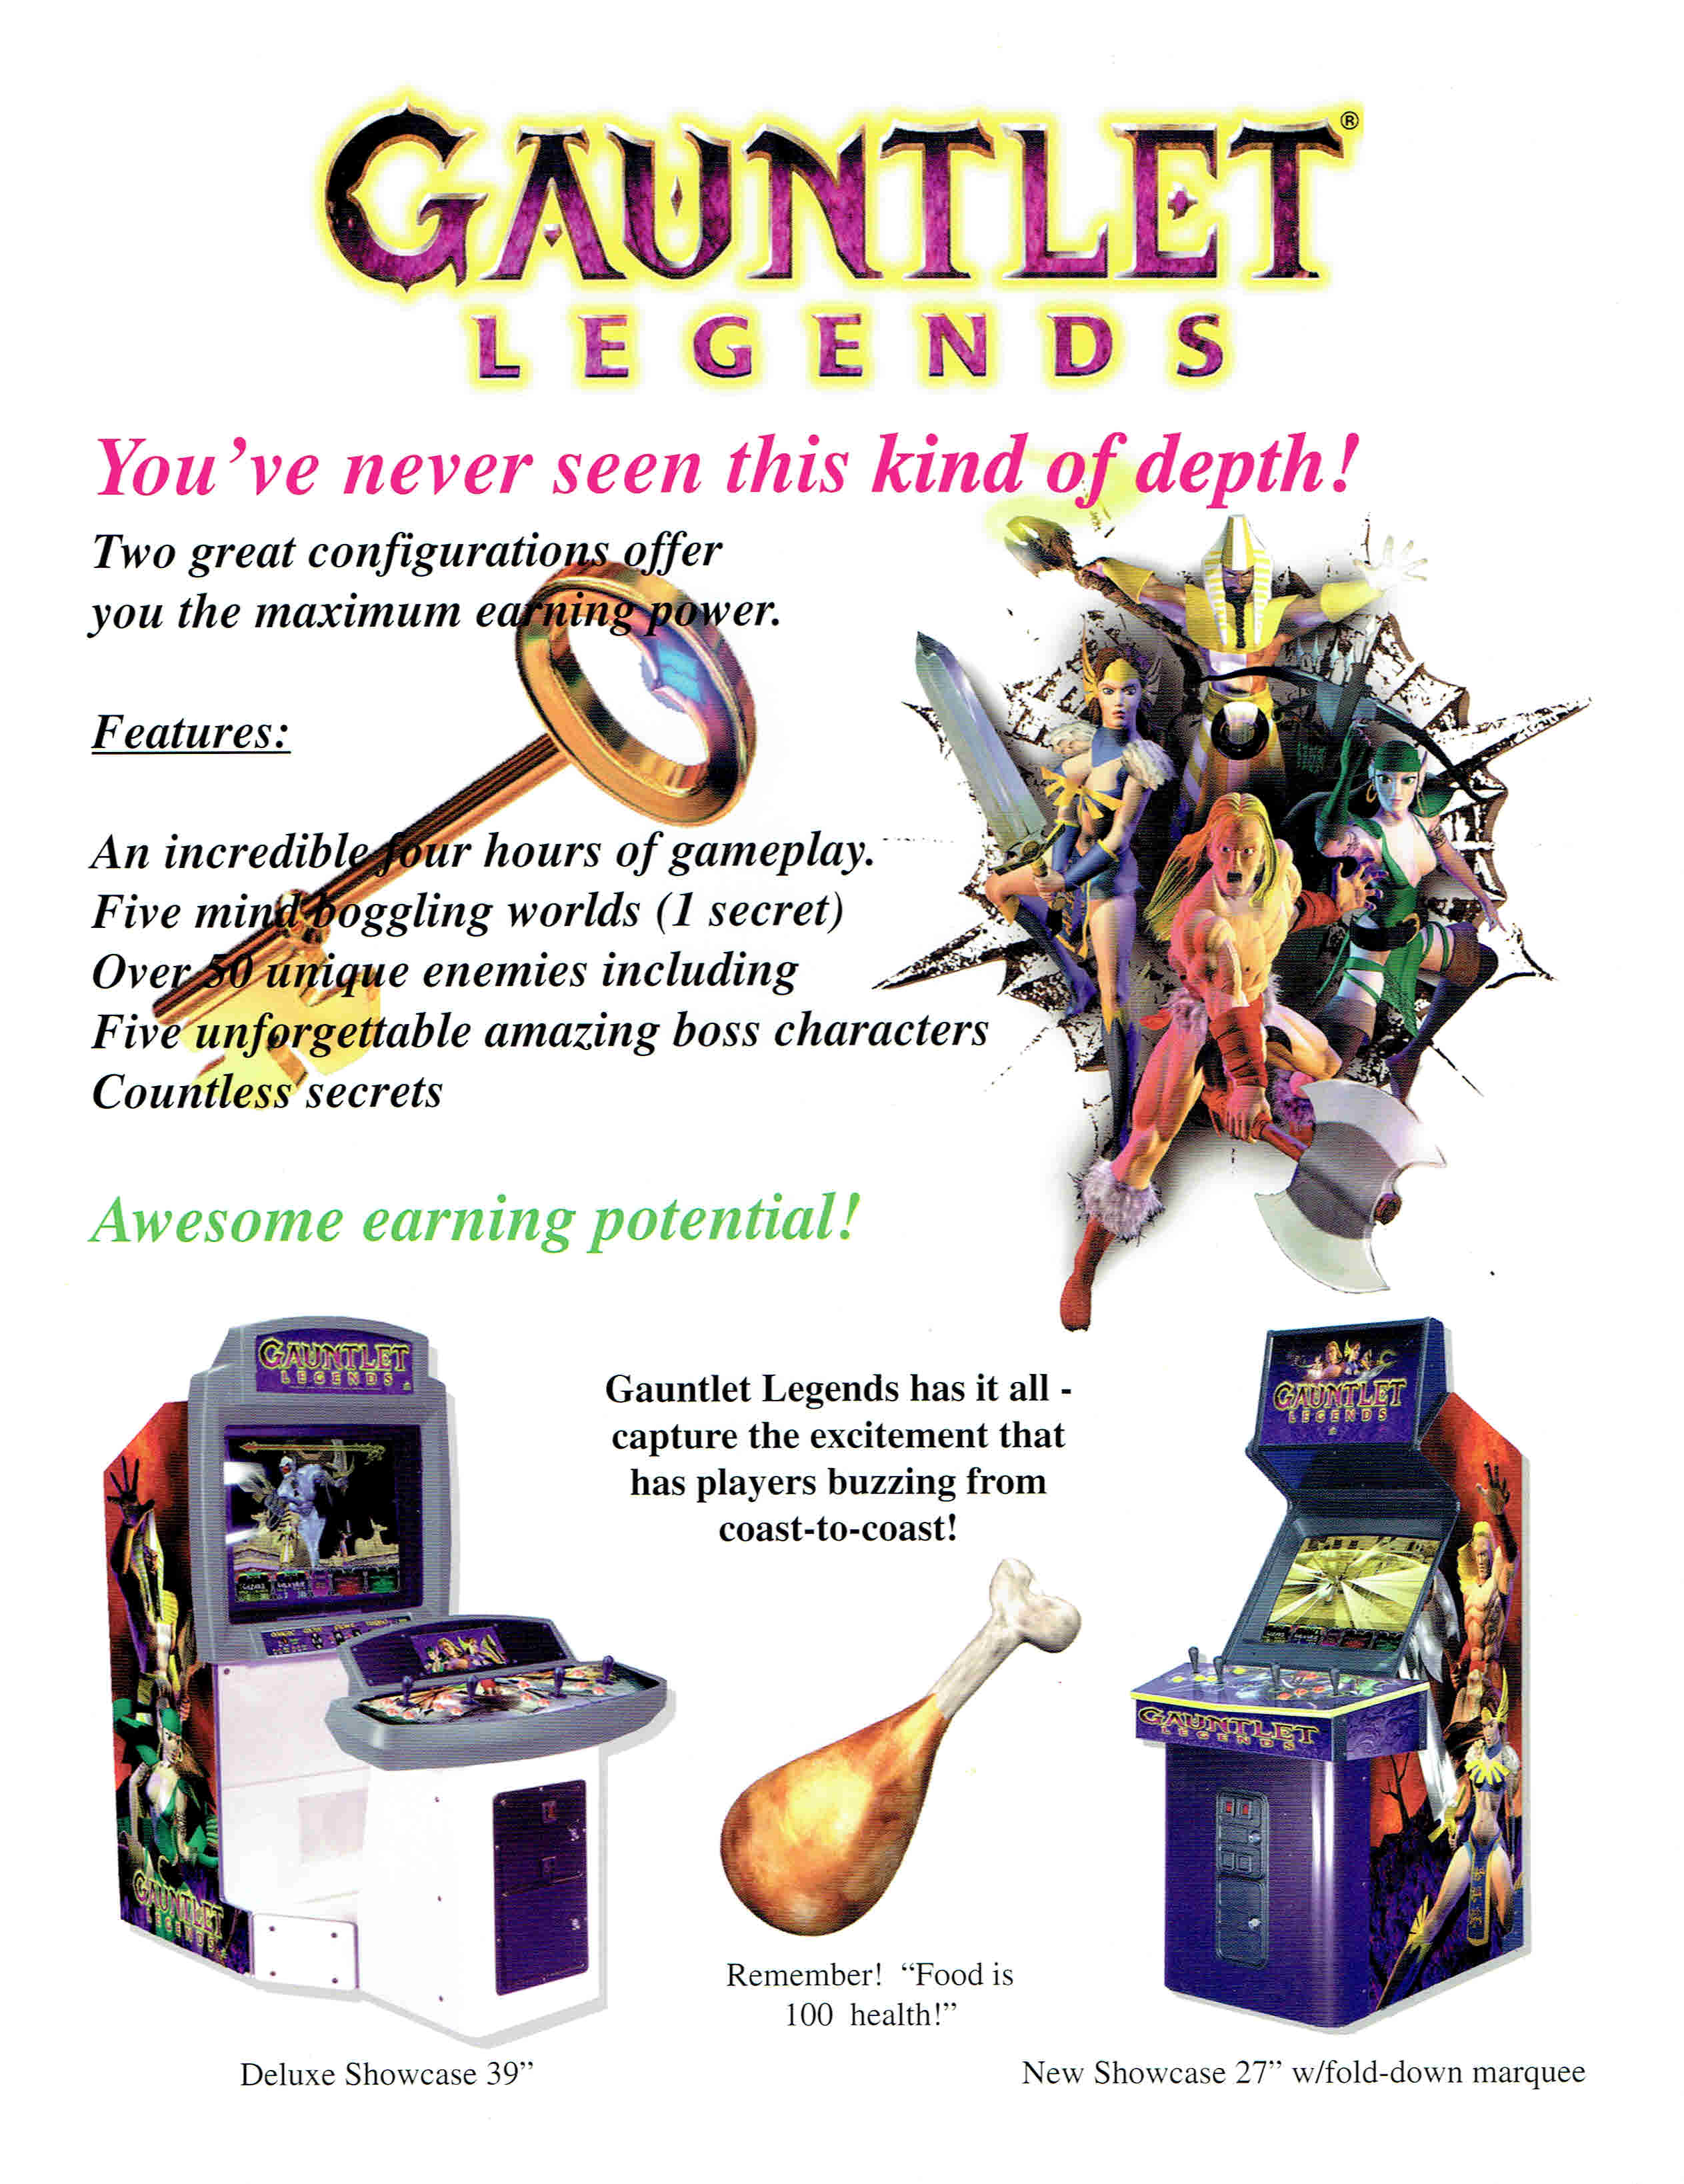 Gauntlet Legends, a 1998 arcade video game by Atari Games